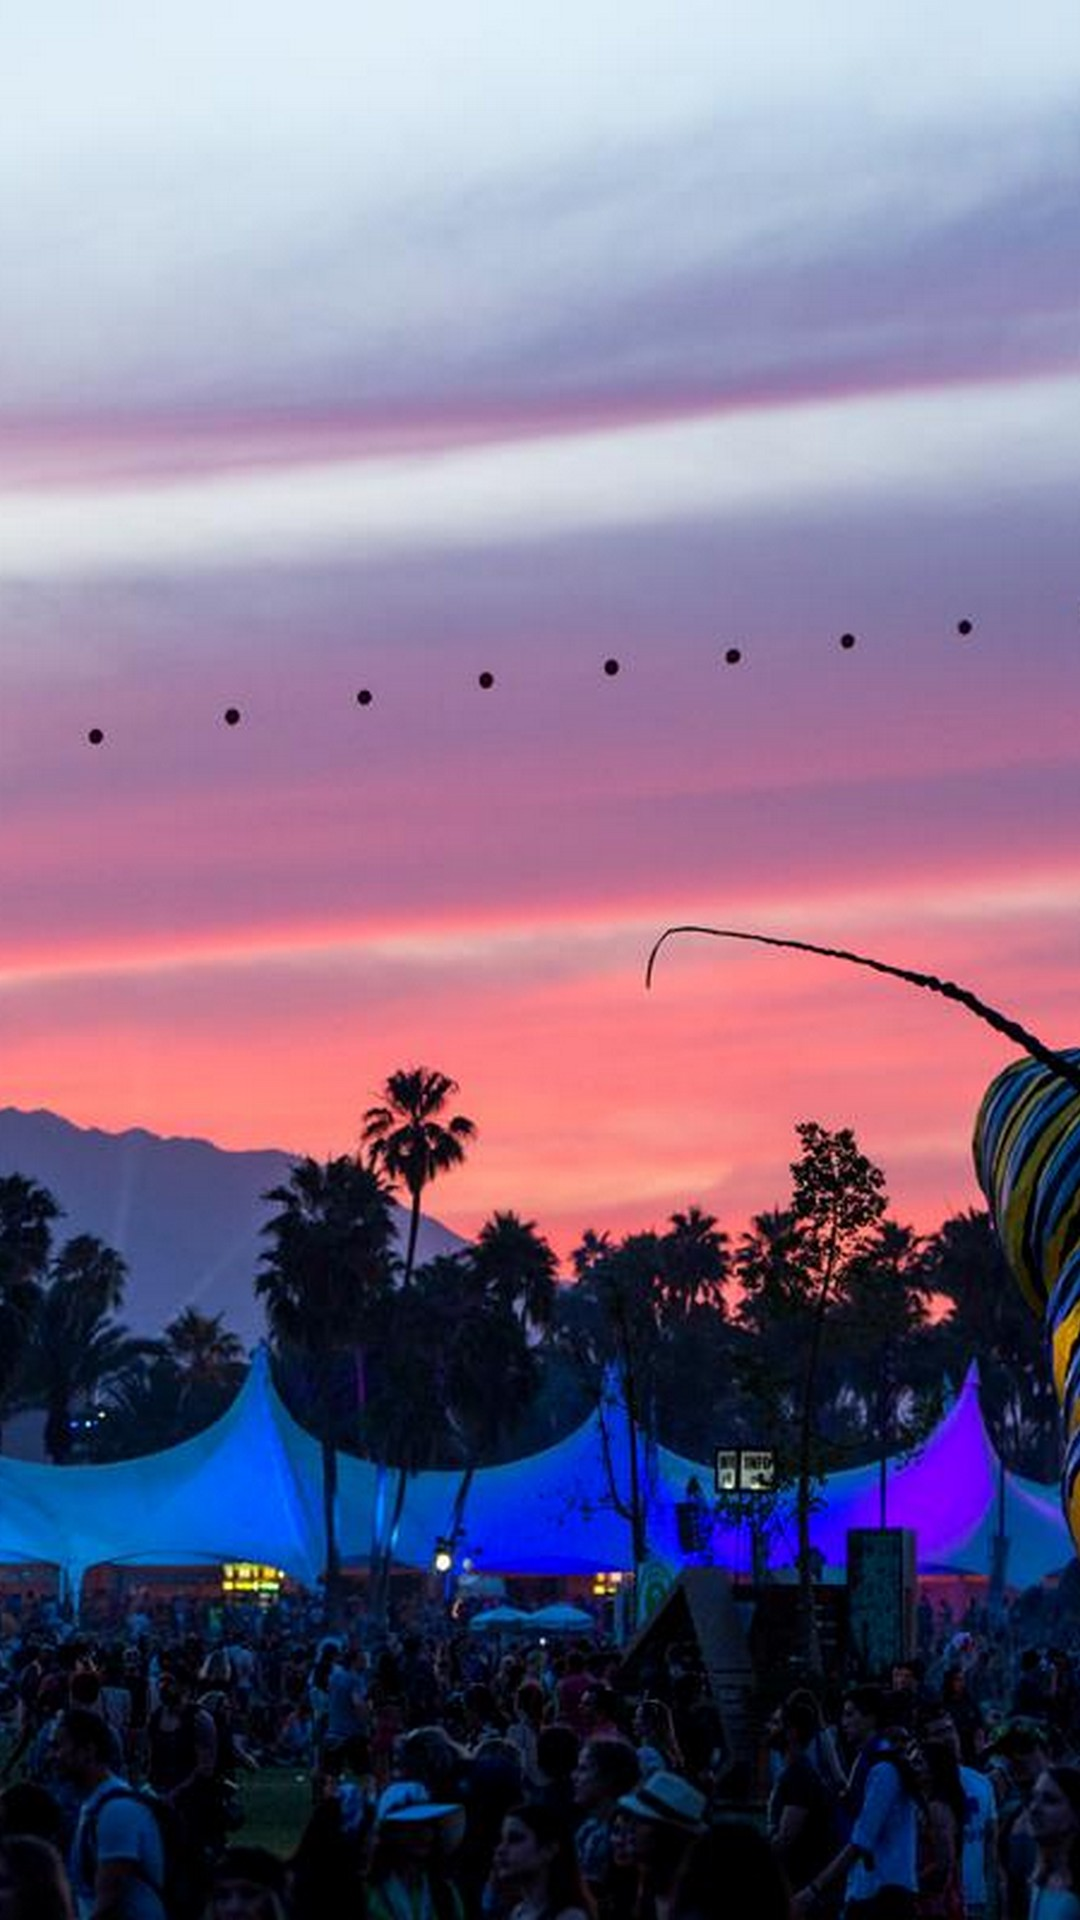 Coachella 2019 Iphone 6 Wallpaper Hd Phone Iphone 6 New